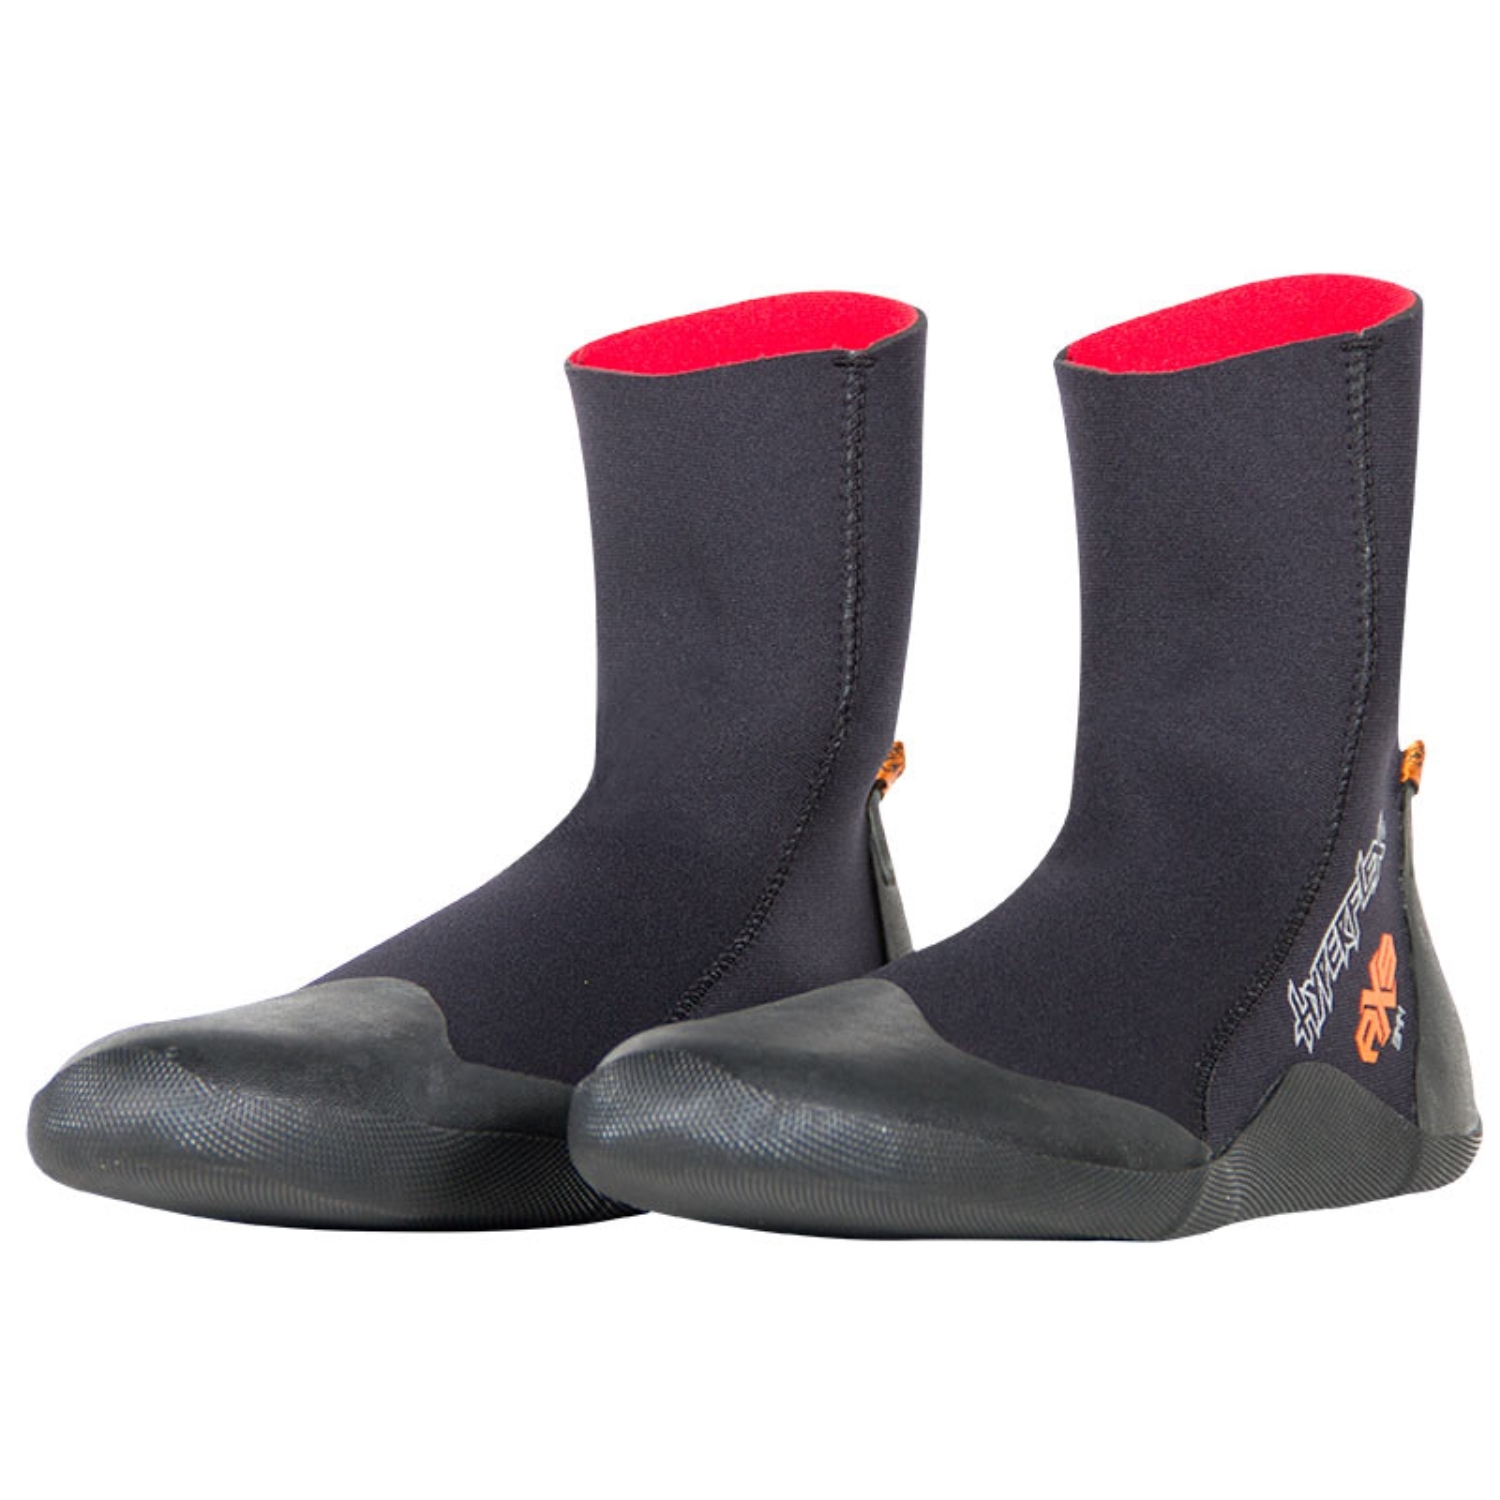 Hyperflex Access 5mm Round Toe Boots (6) by Hyperflex Surf Wetsuits